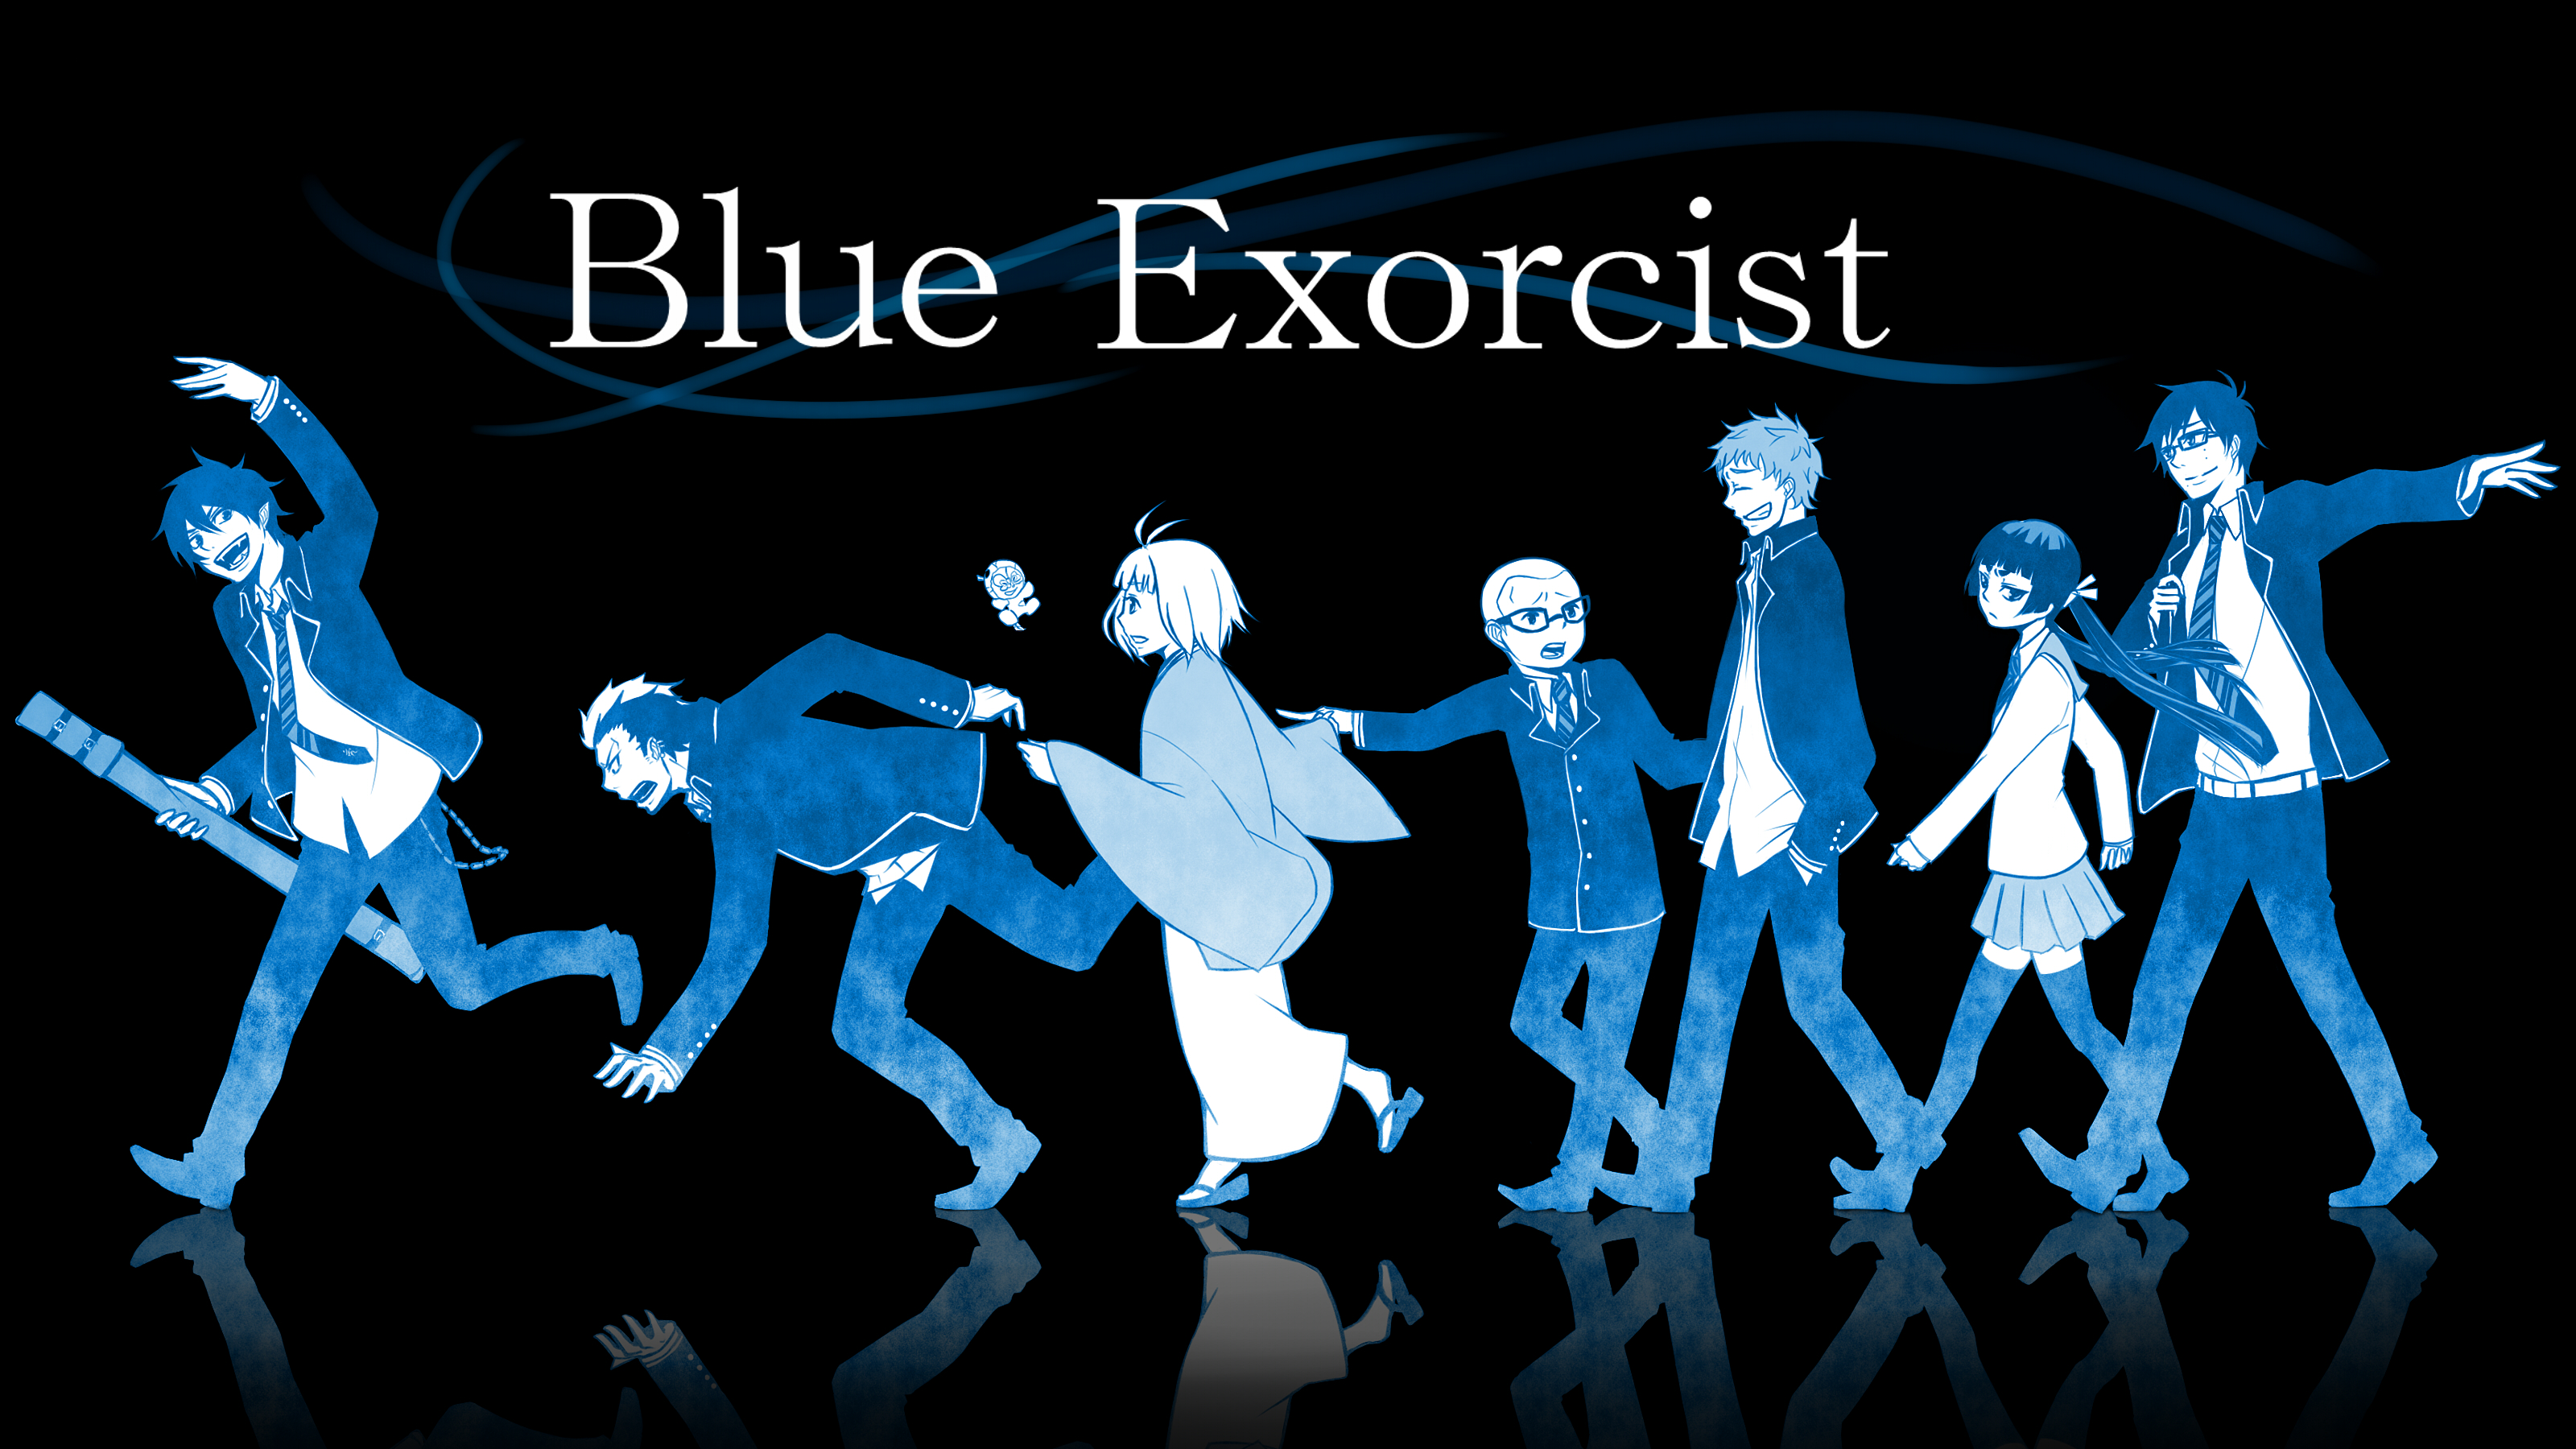 blue exorcist computer wallpapers - photo #13